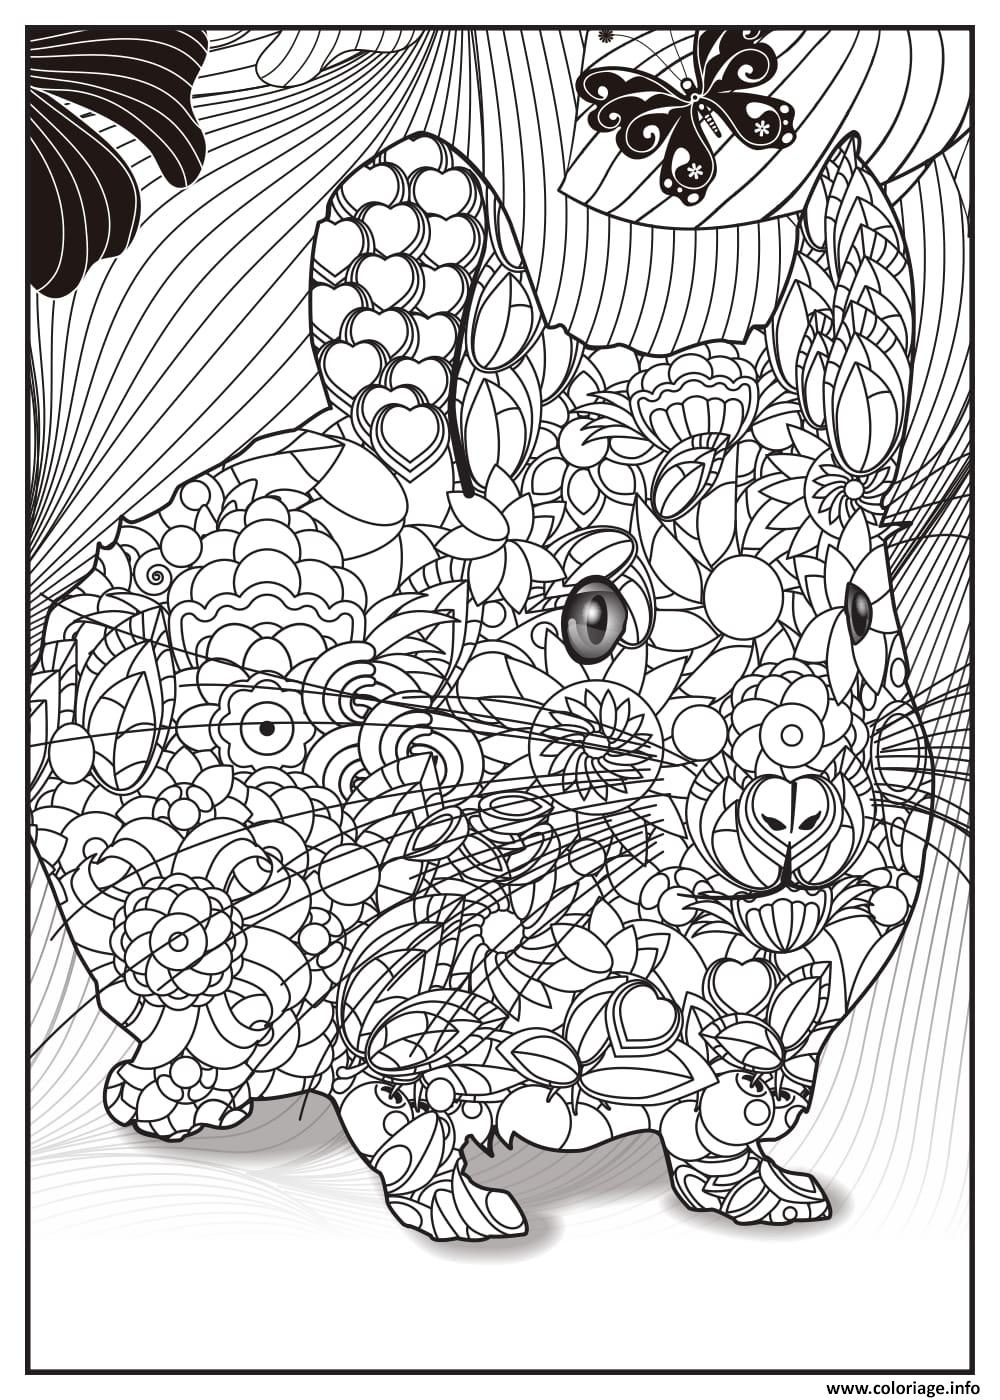 Coloriage Gratuit Bebe Lapin.Coloriage Bebe Lapin Adulte Animaux Dessin